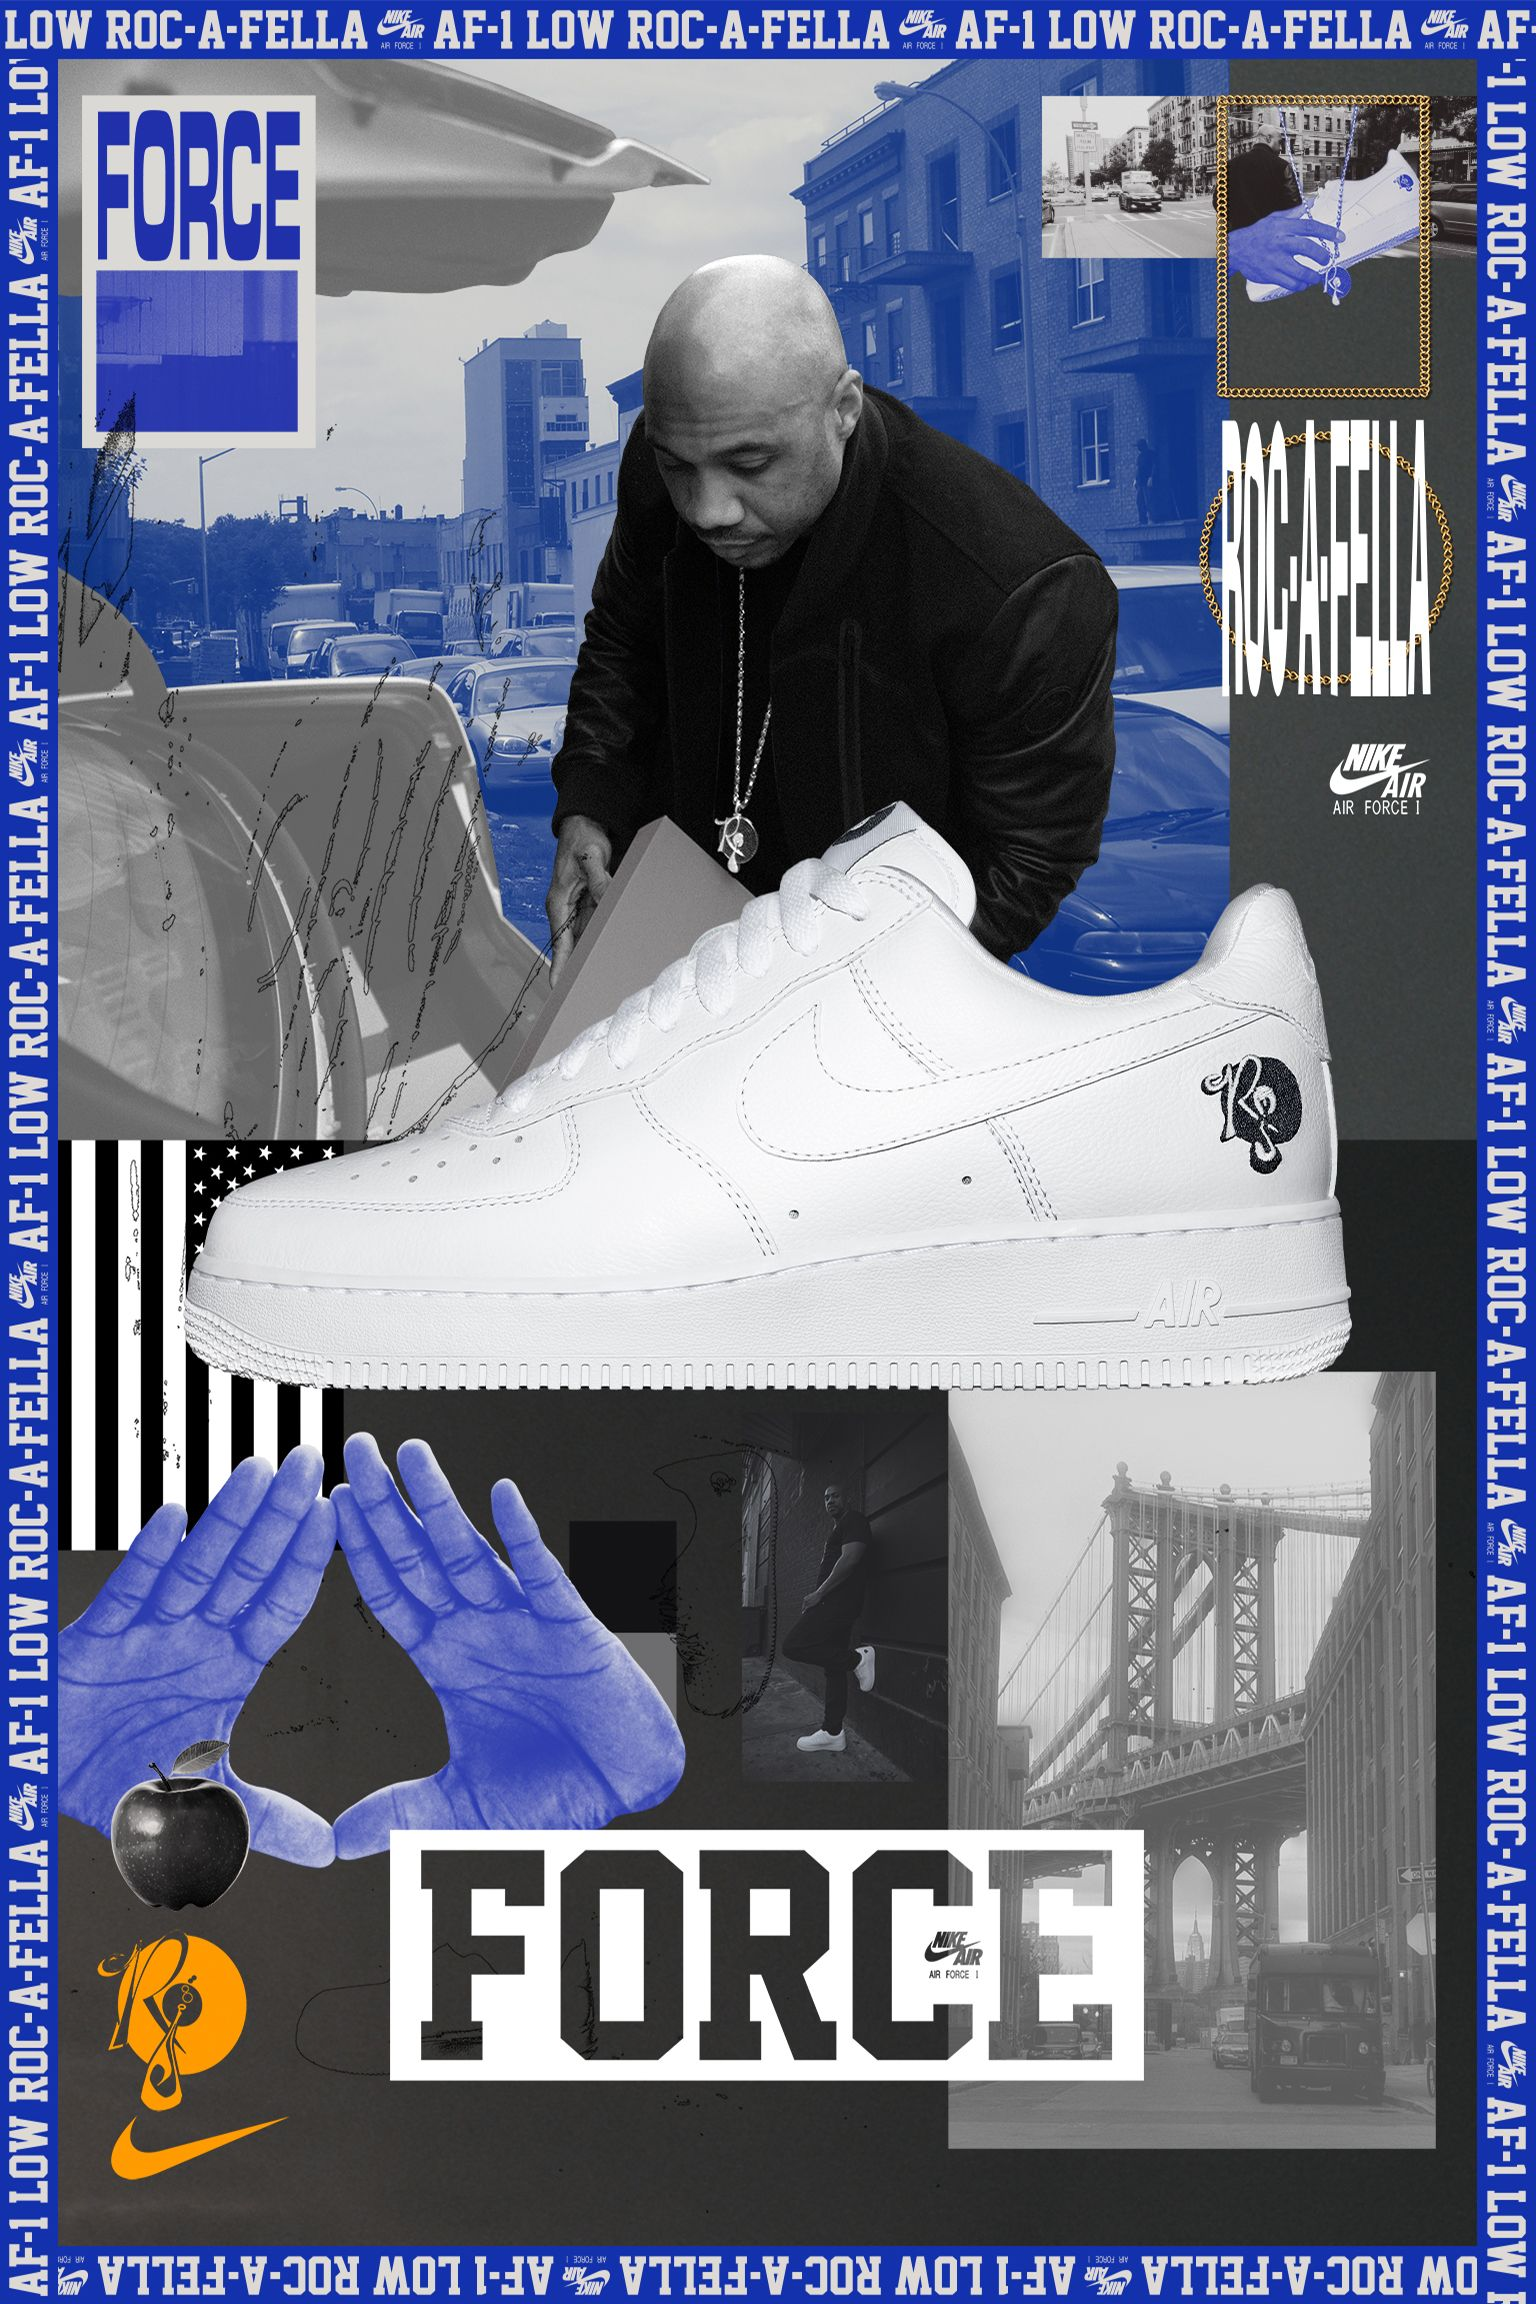 Behind The Design: Air Force 1 Roc-A-Fella